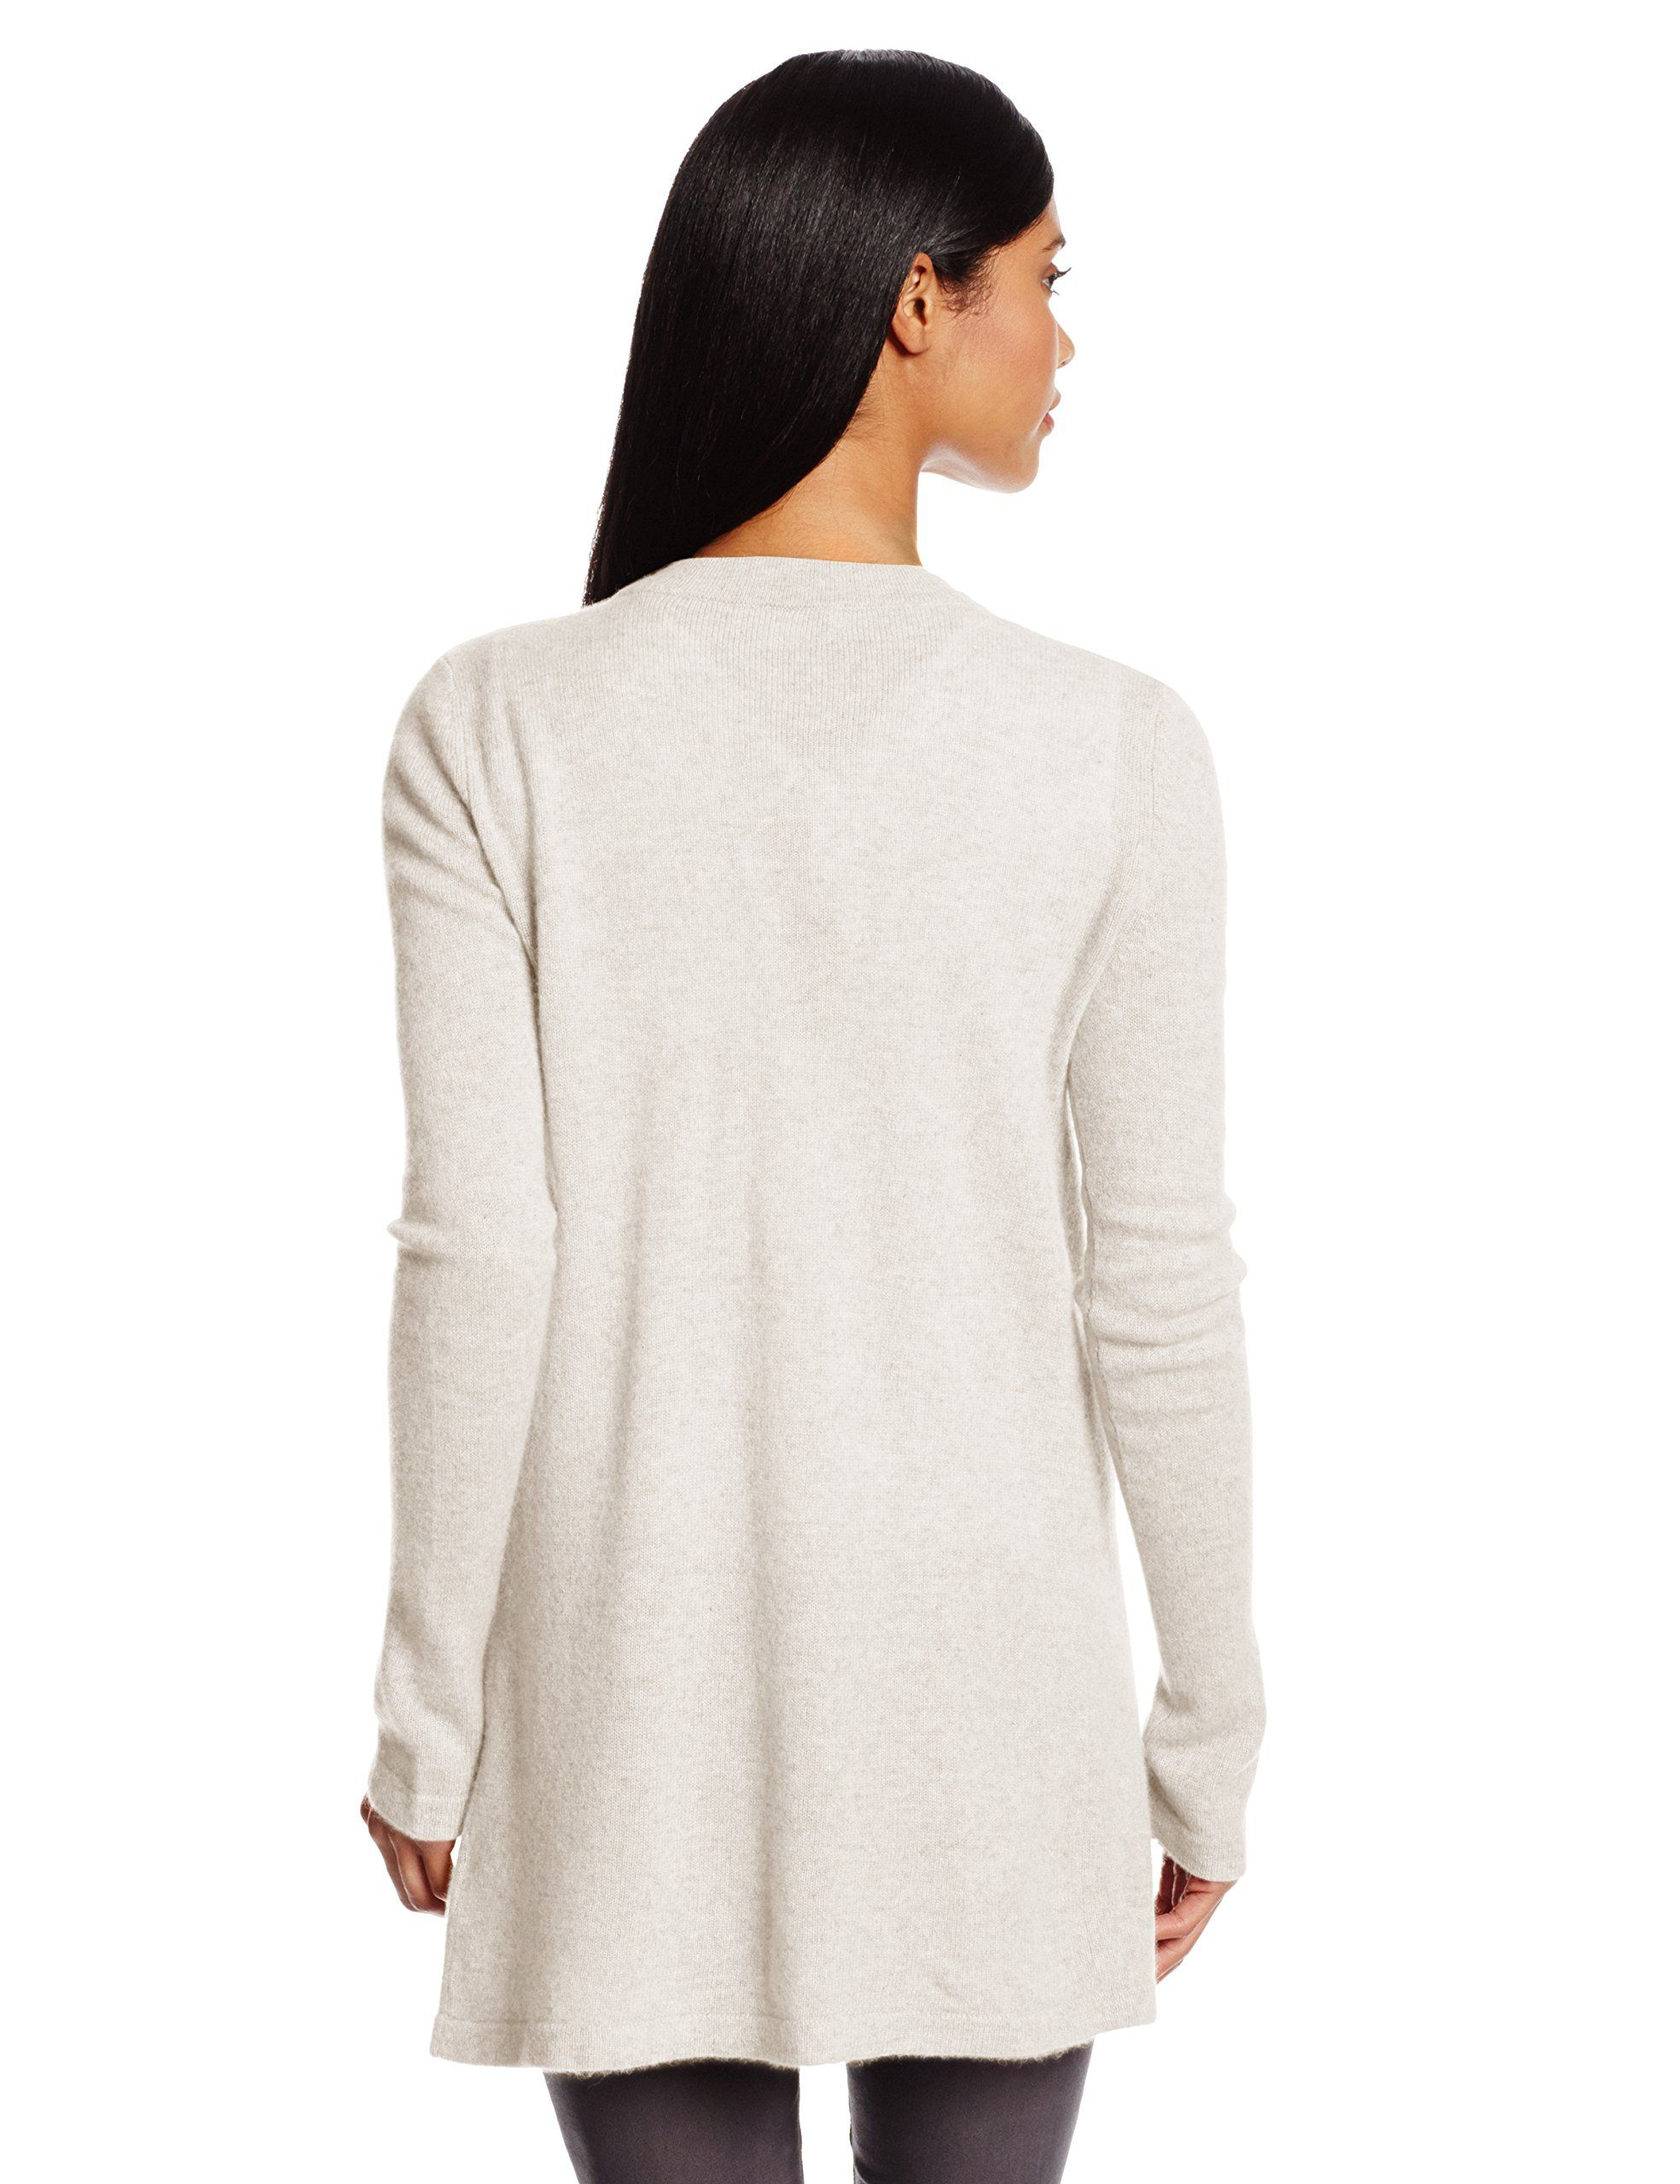 Christopher Fischer Women's 100% Cashmere Open Front Cardigan ...